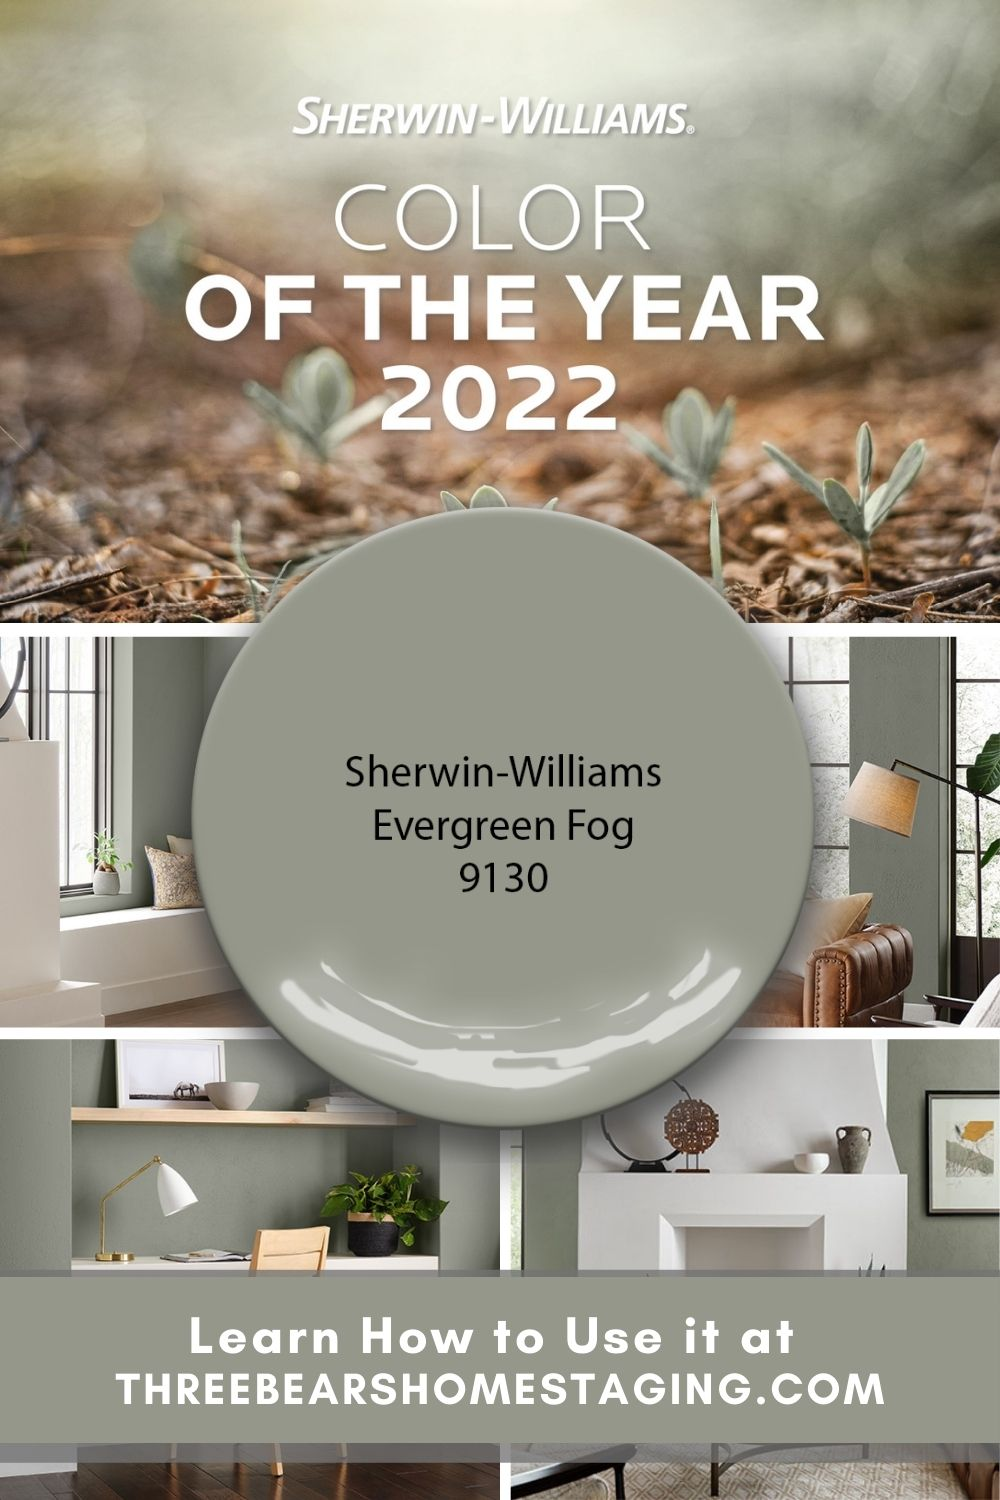 2022 Color of the Year Evergreen Fog